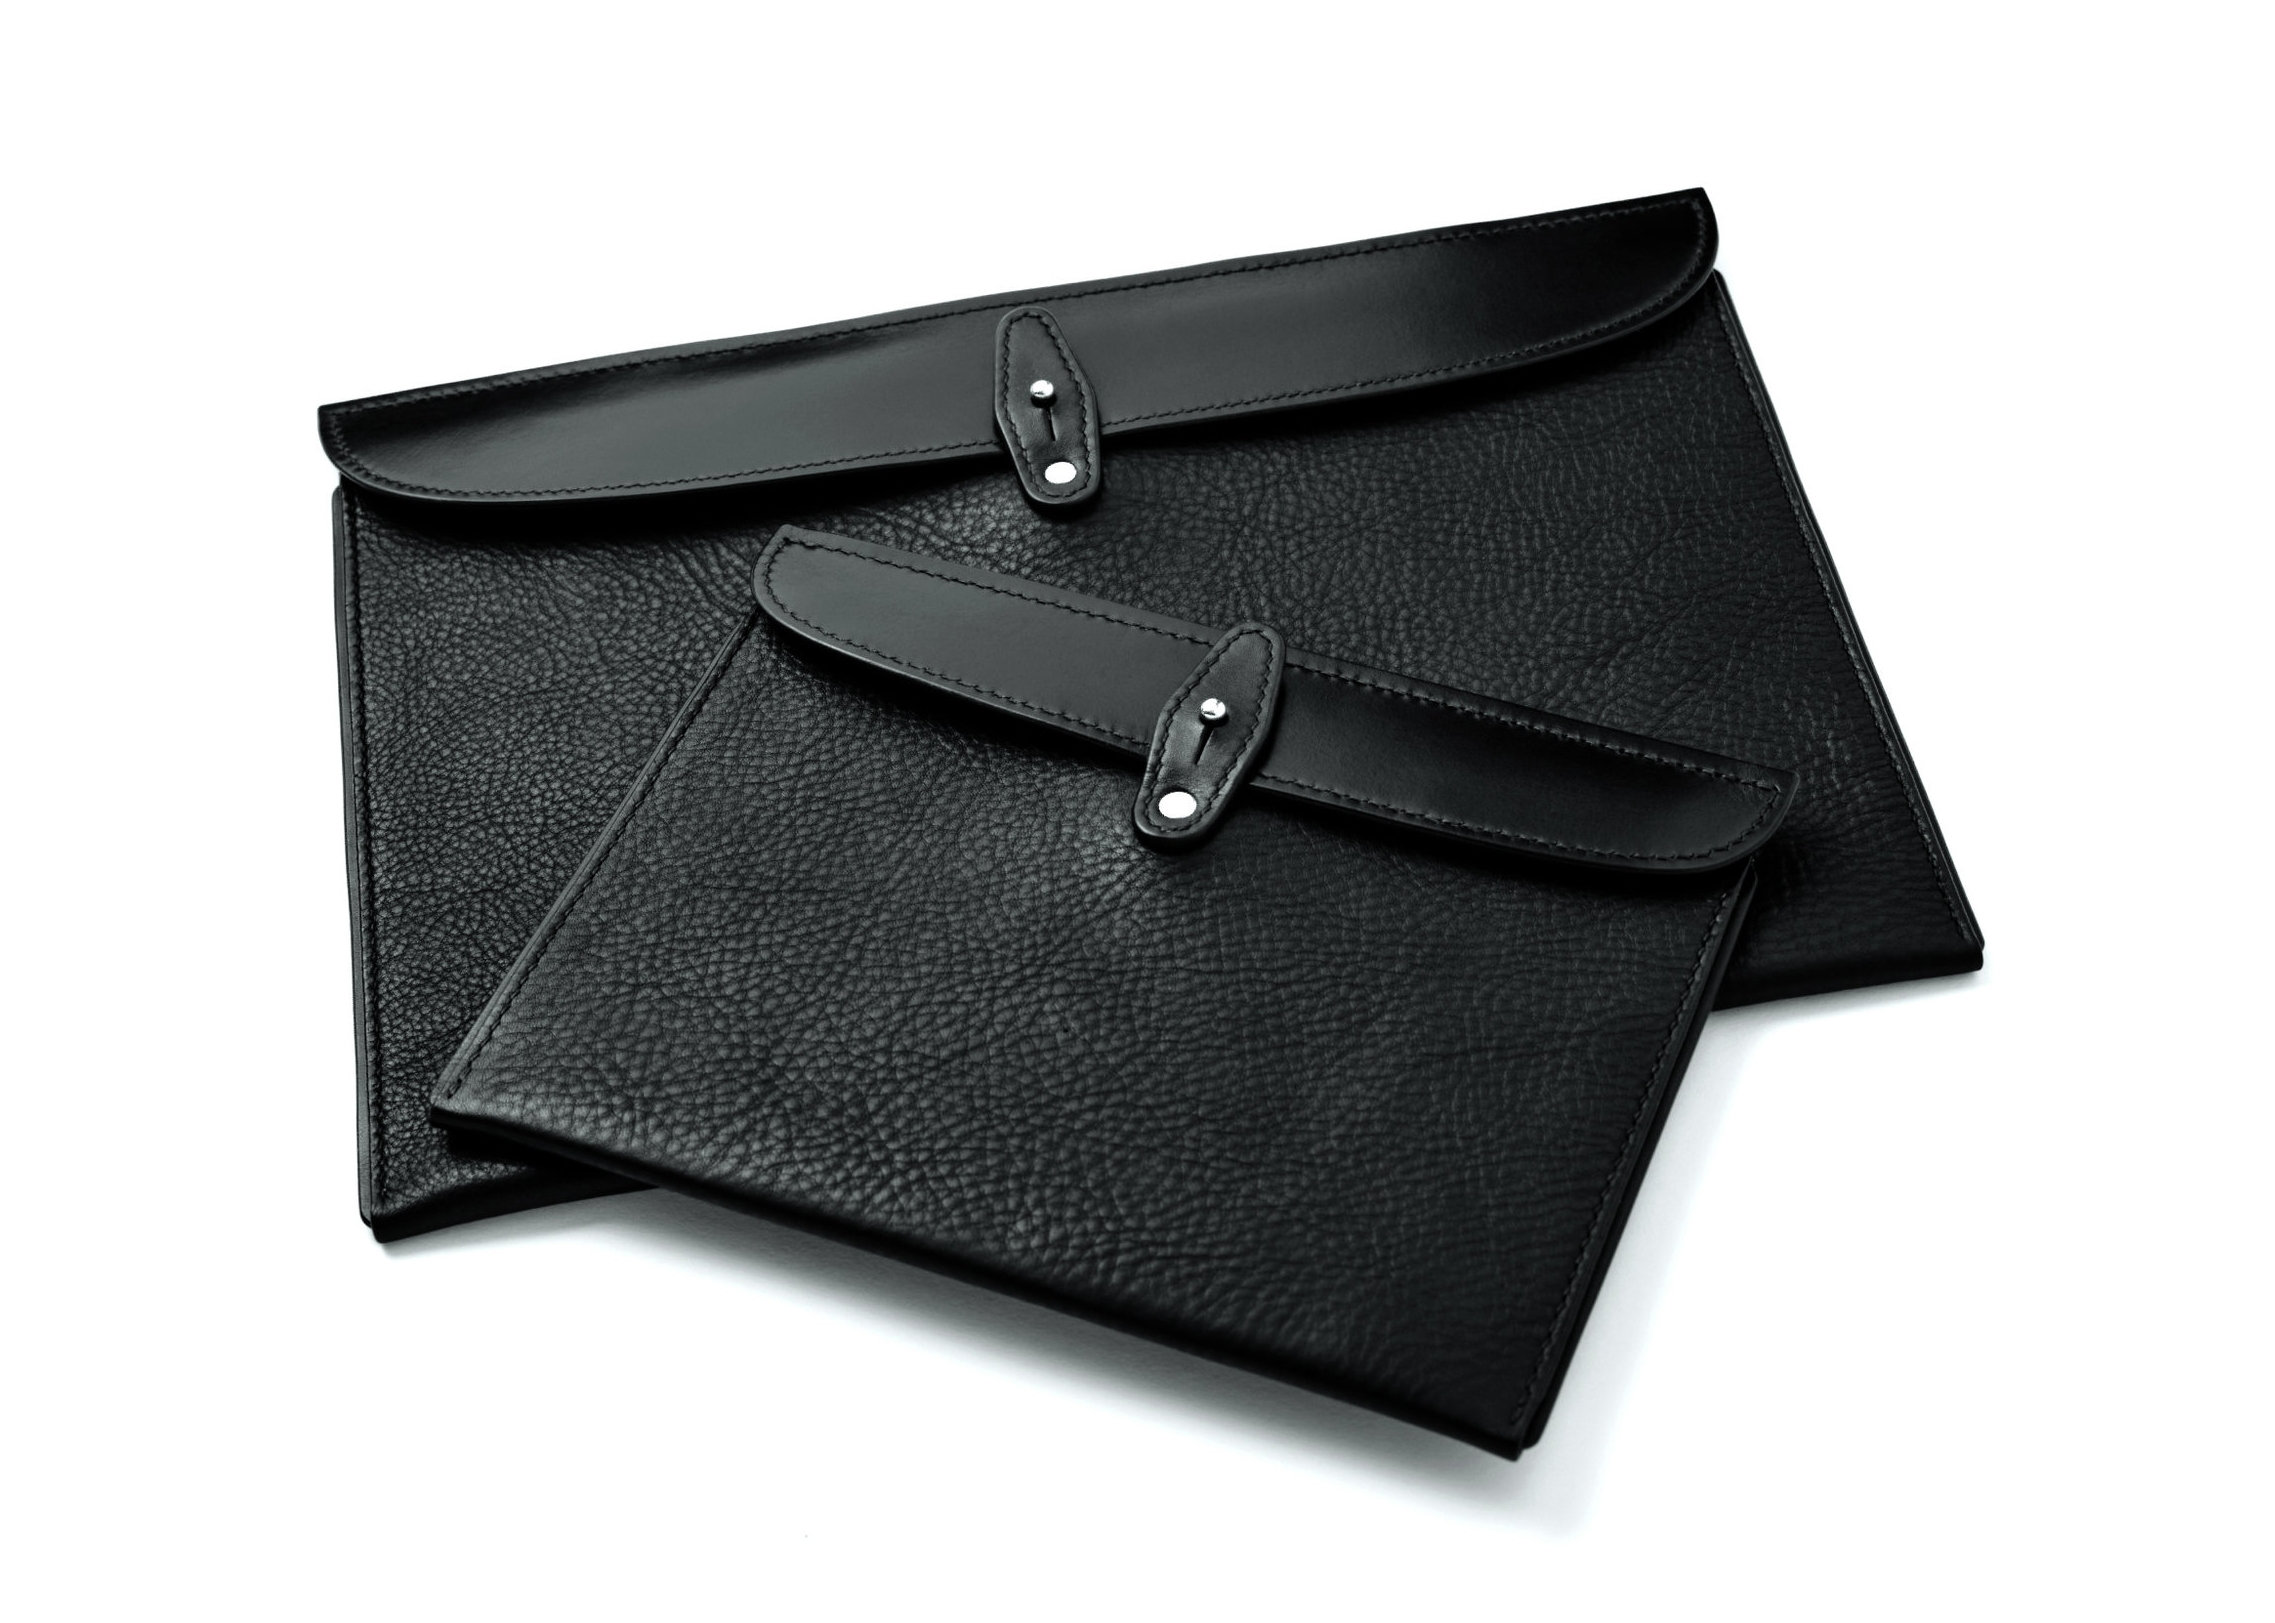 The Port Collection - A pair of Portfolio designs, crafted for a lifetime of use.View the collection